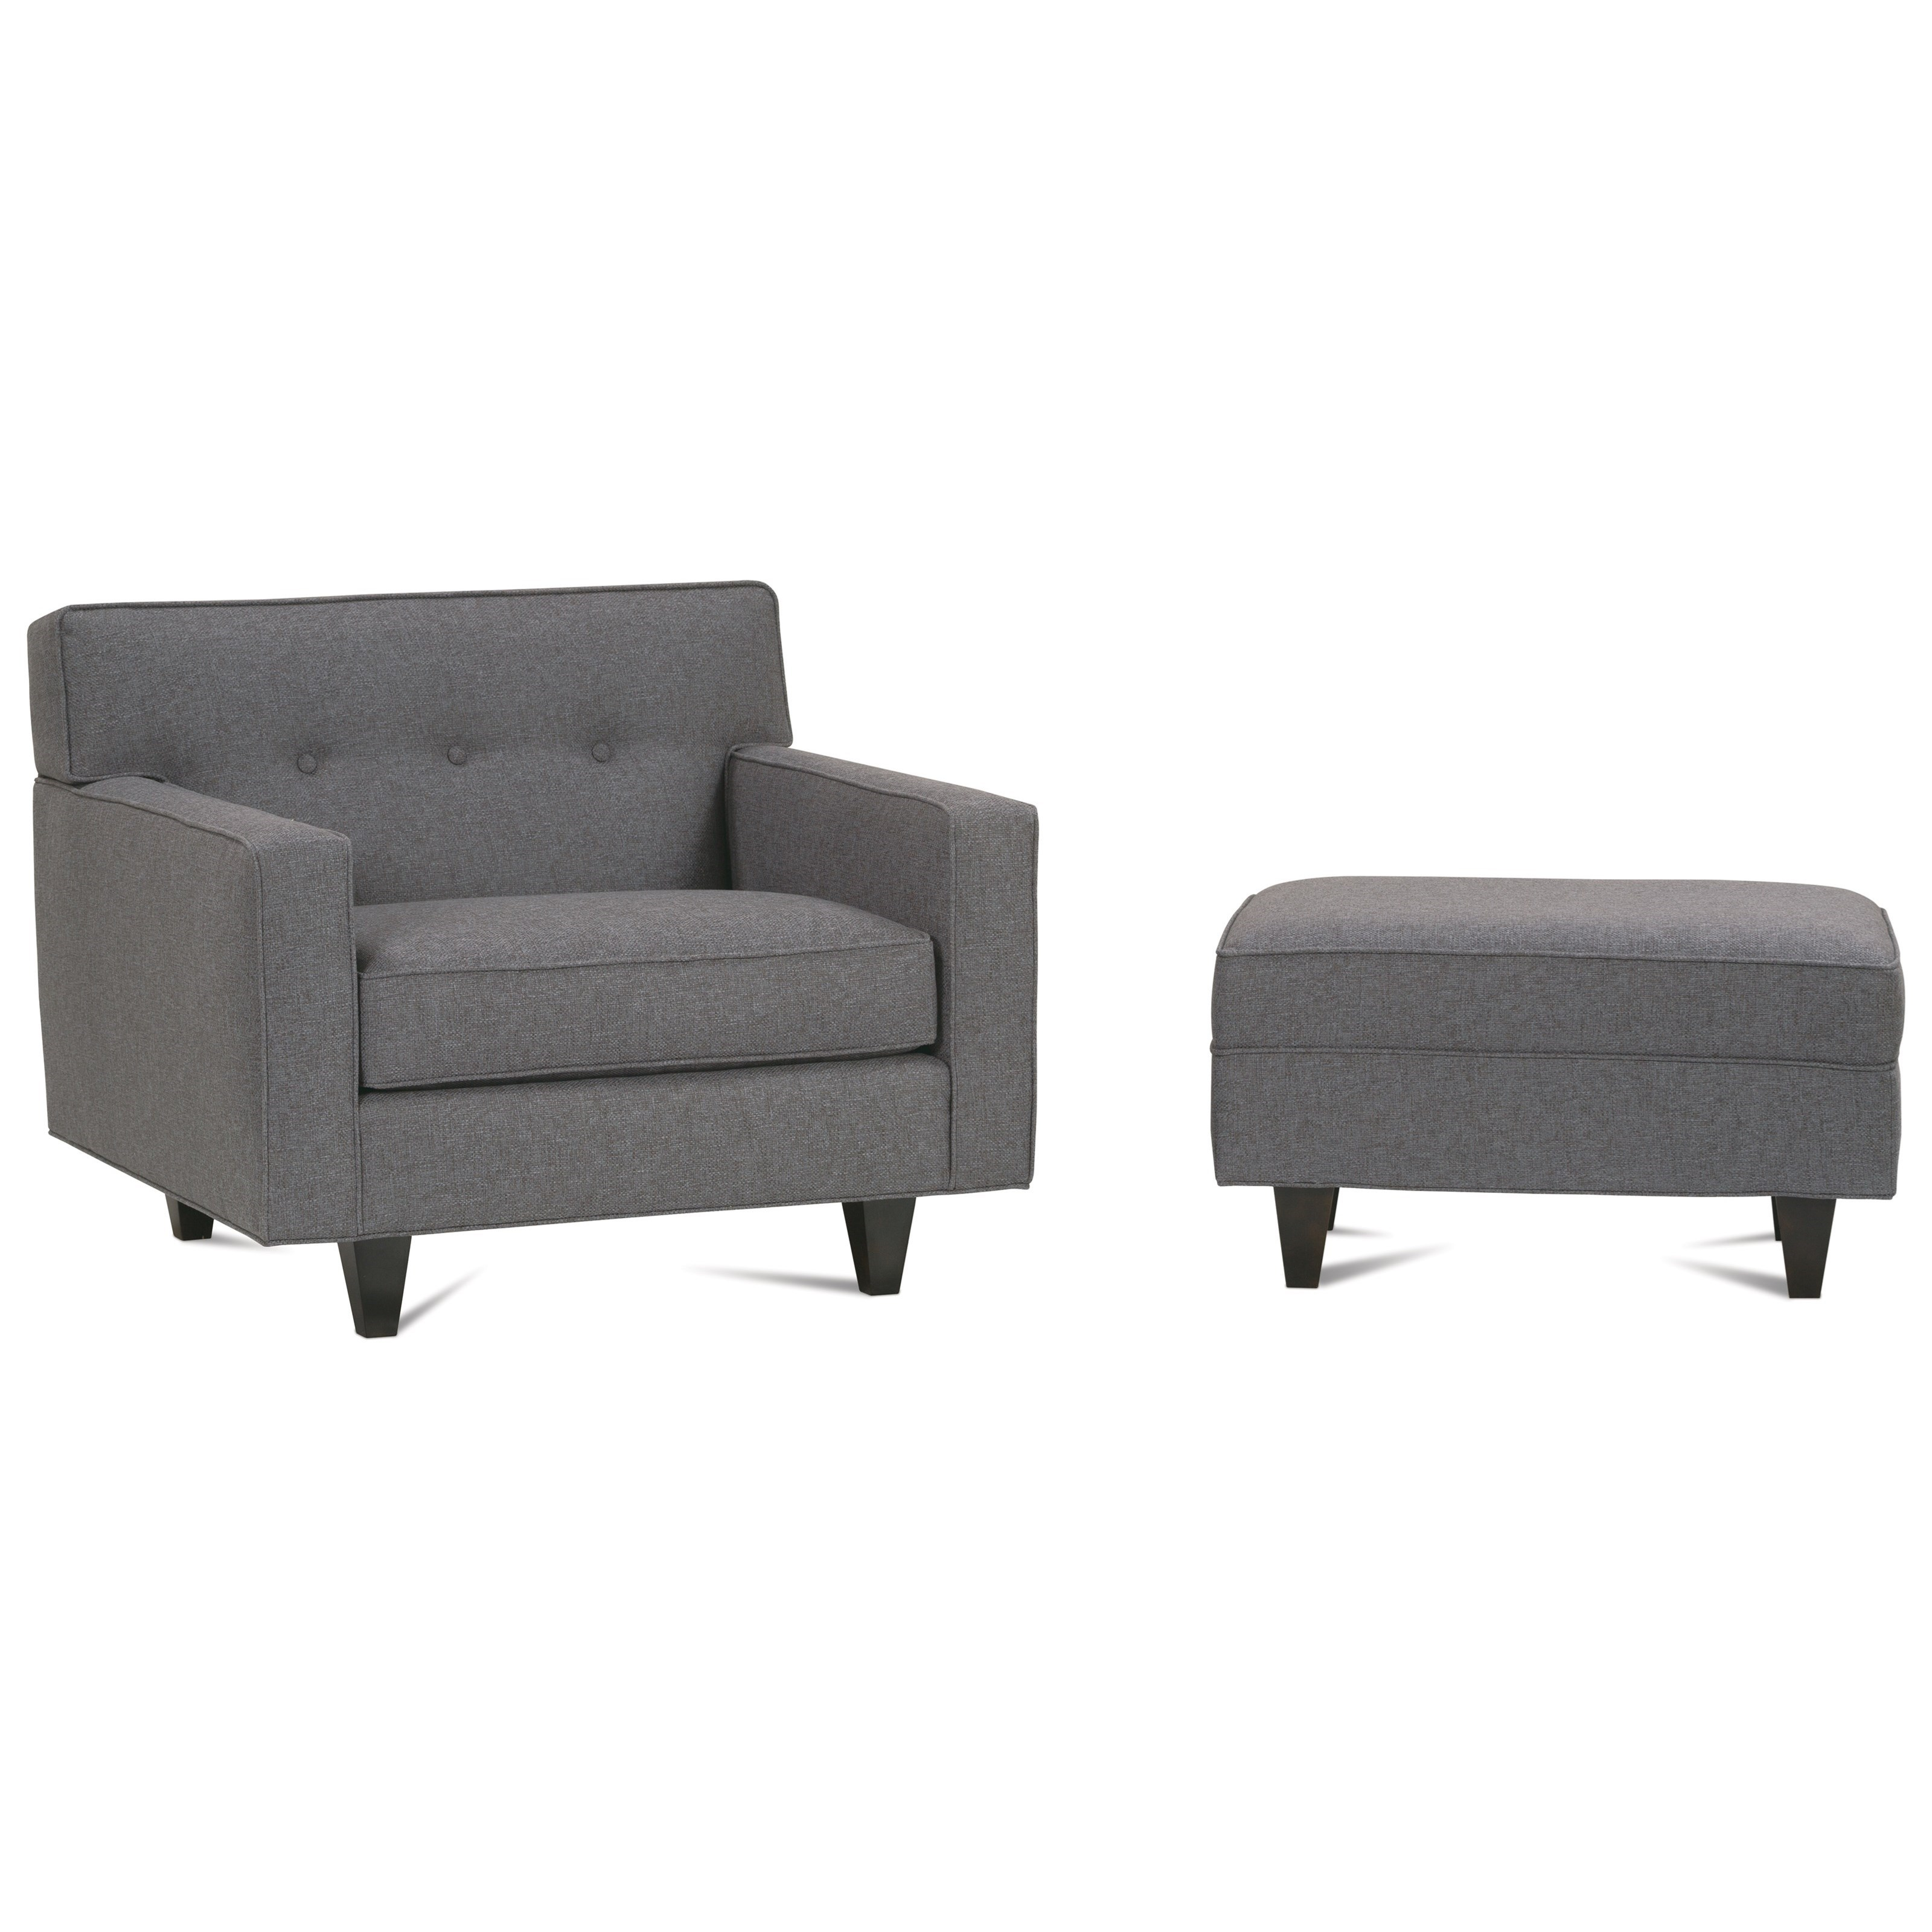 Dorset Upholstered Chair & Ottoman by Rowe at Saugerties Furniture Mart